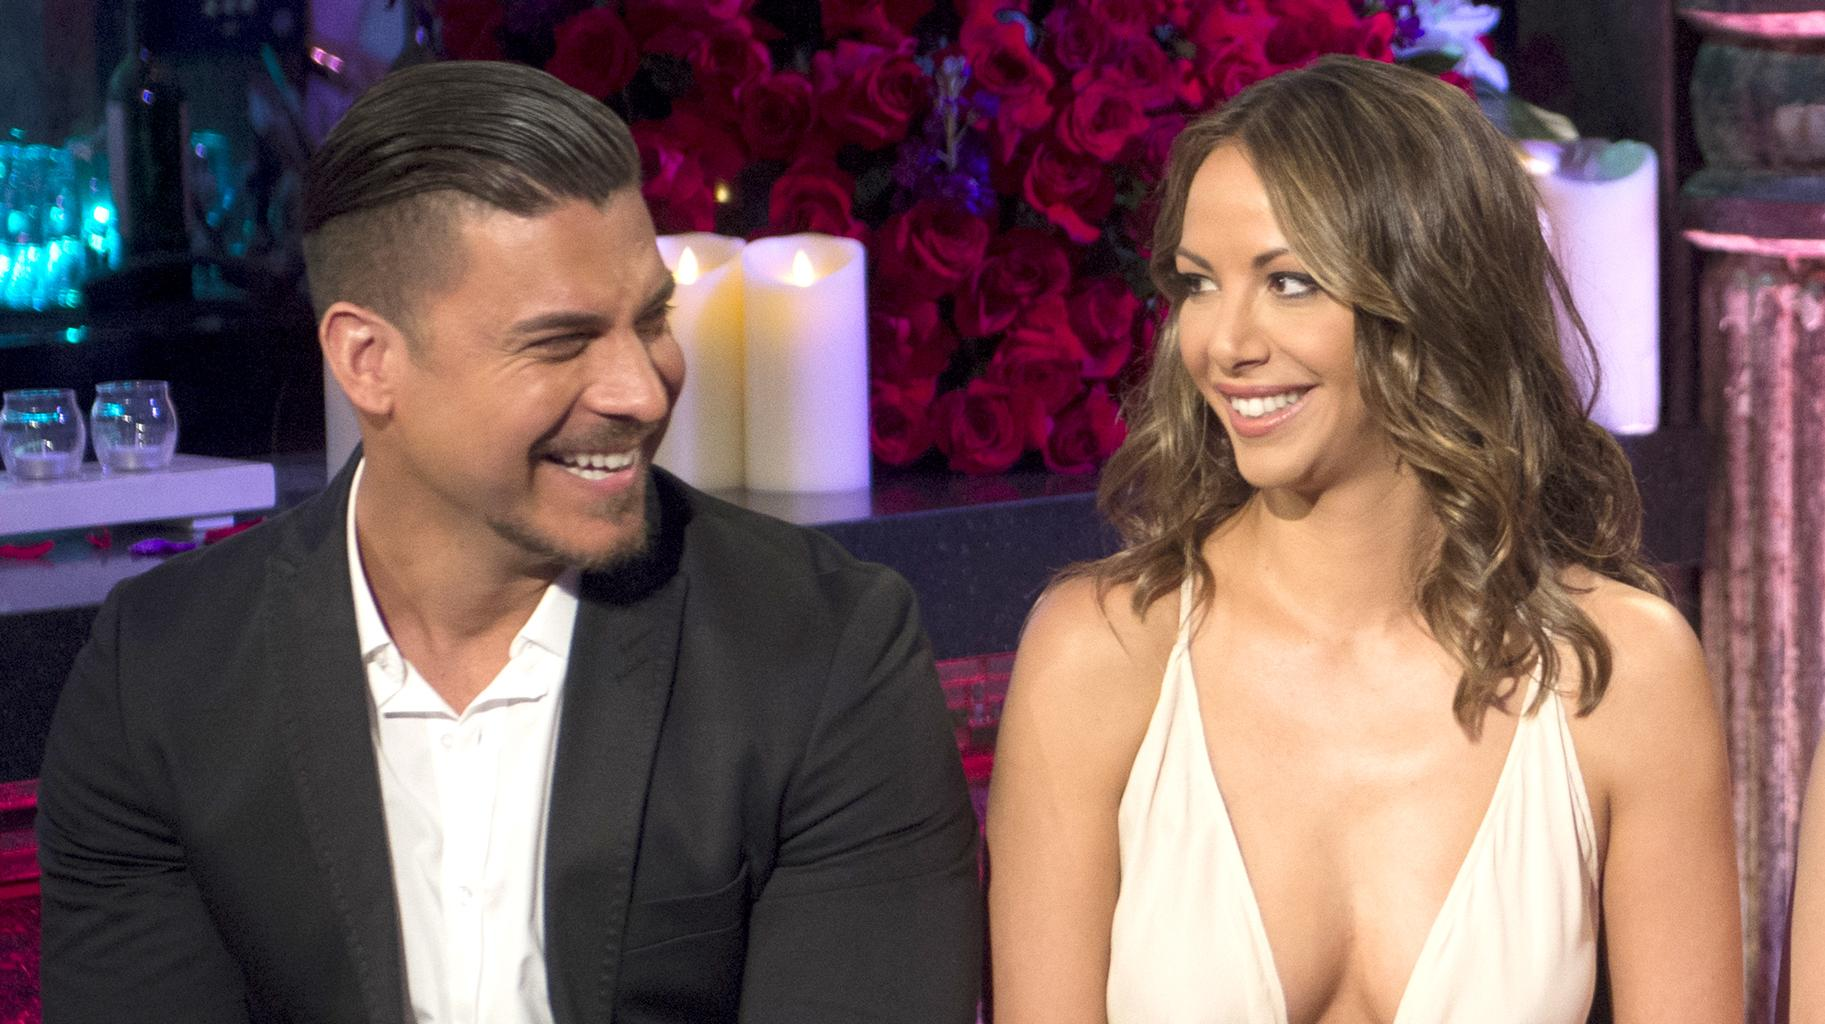 Kristen Doute Says Jax Taylor Might Get 'Pissed' When Learning About The Chapter About Him In Her Upcoming Book!